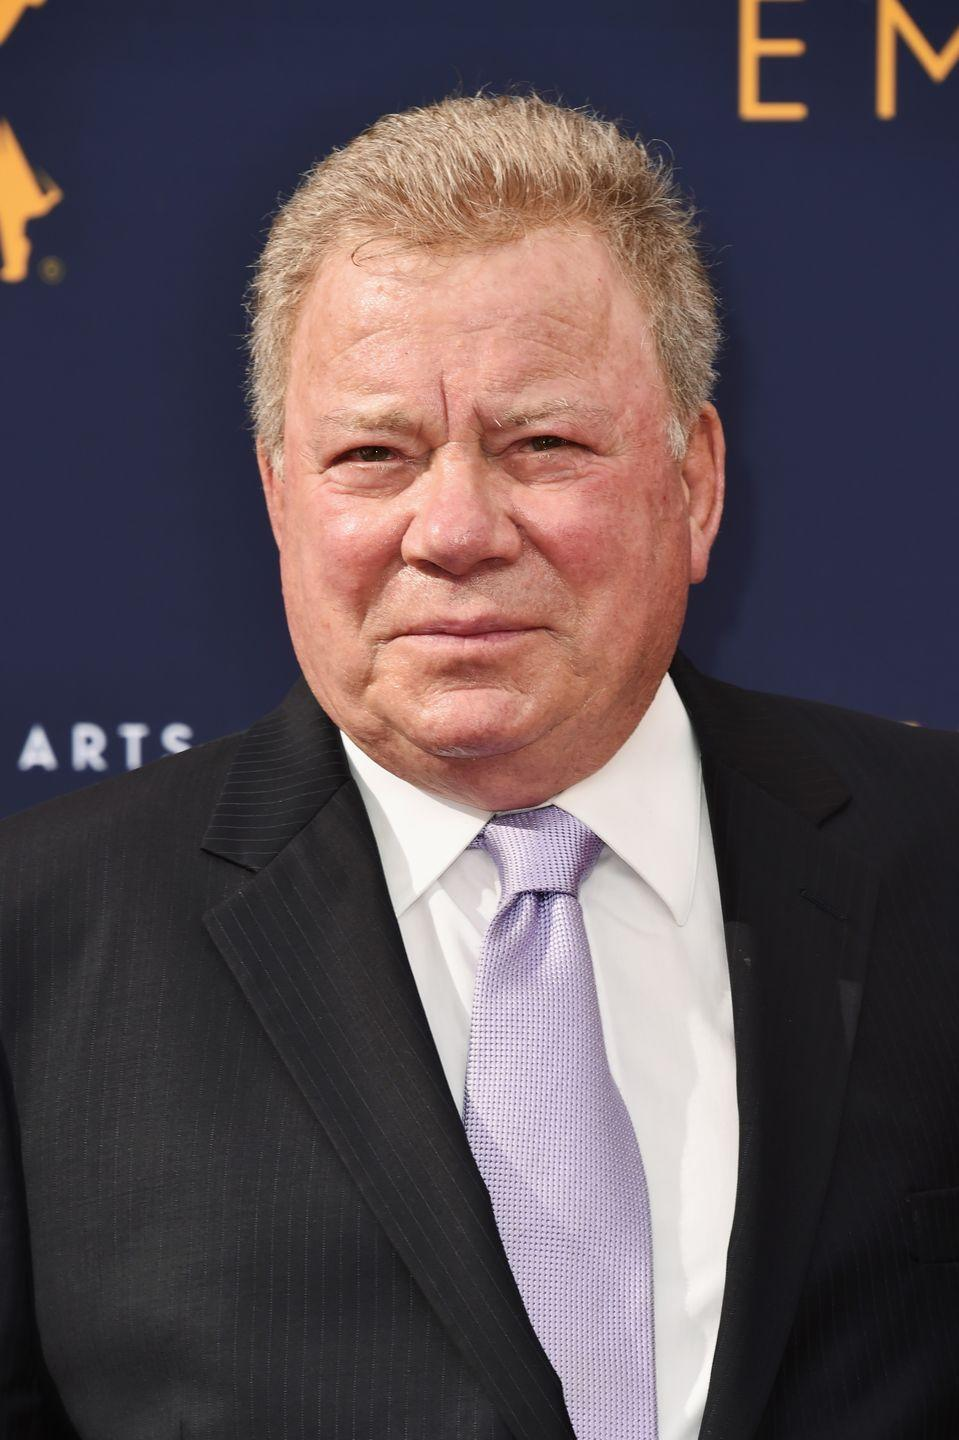 <p>Shatner was born in 1931 ... just let that sink in.</p>